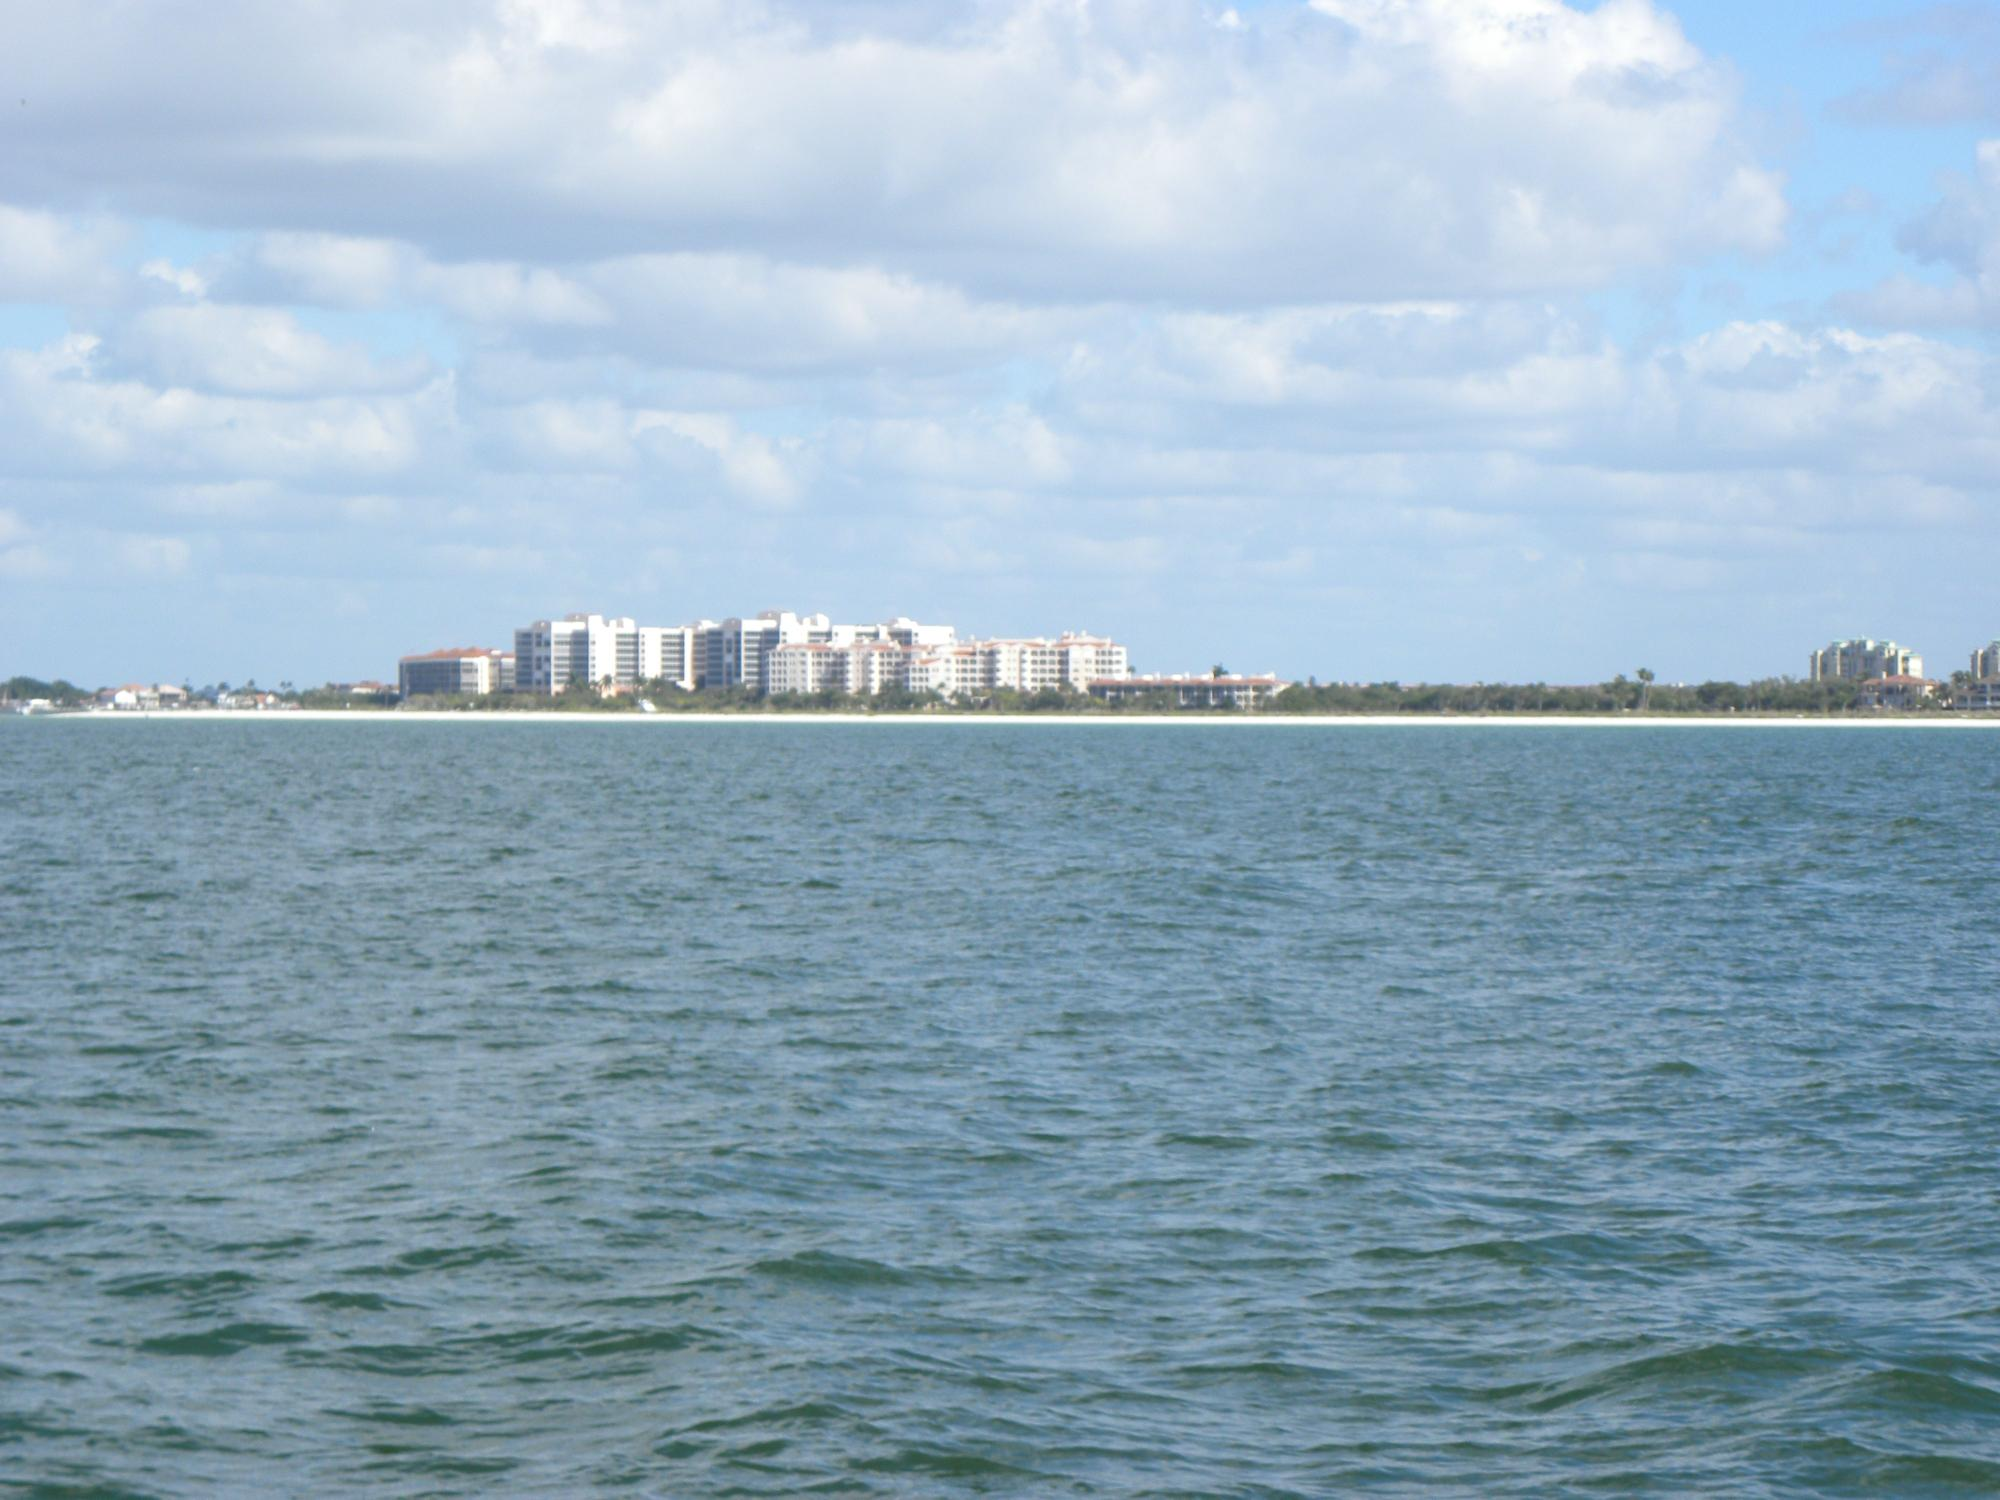 Marco Island from the Marco Island Princess